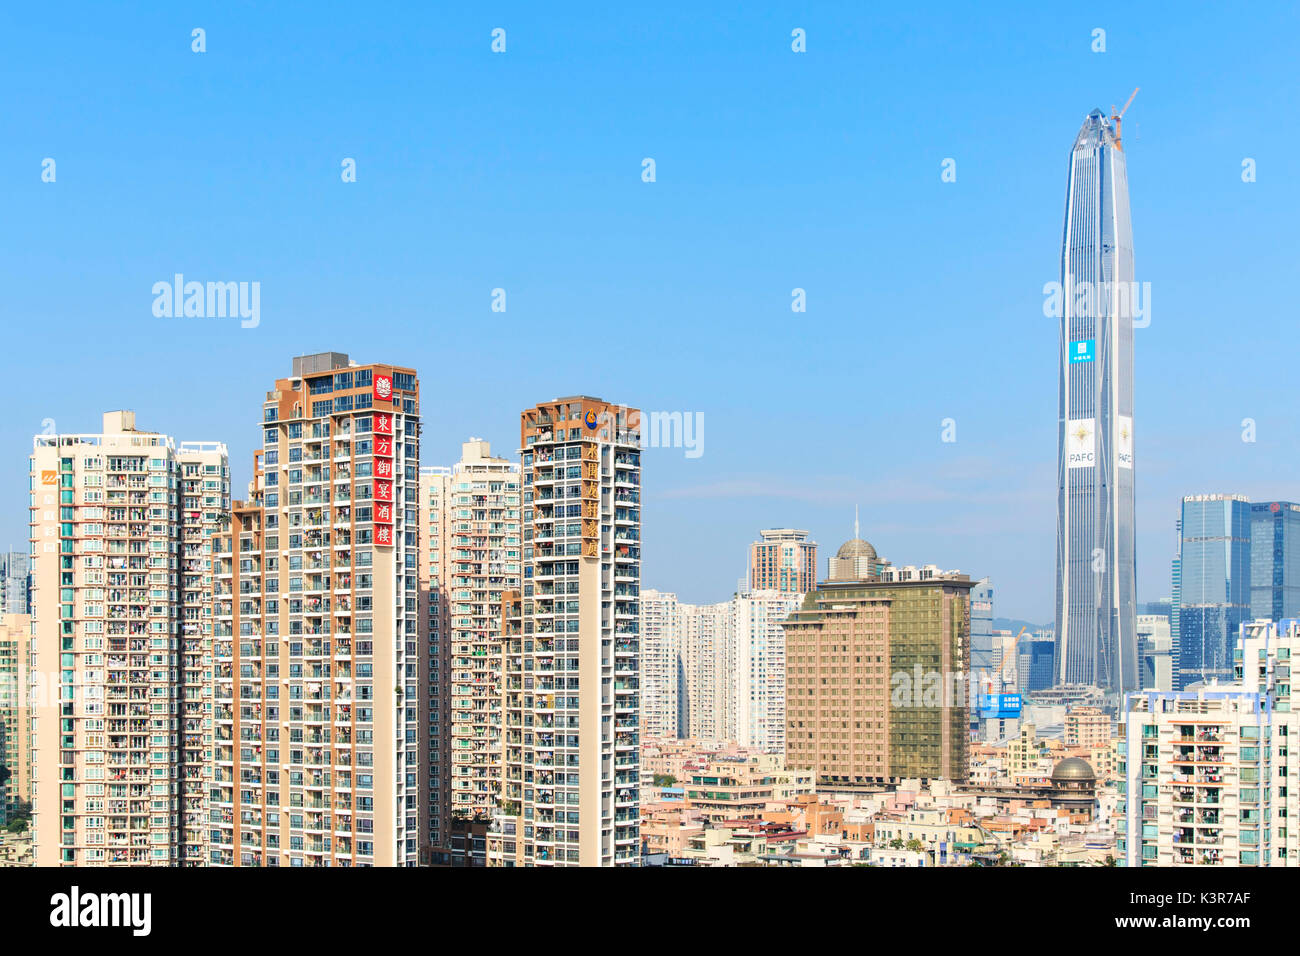 Shenzhen skyline with the KK100, the second tallest building of the city, on background, China - Stock Image